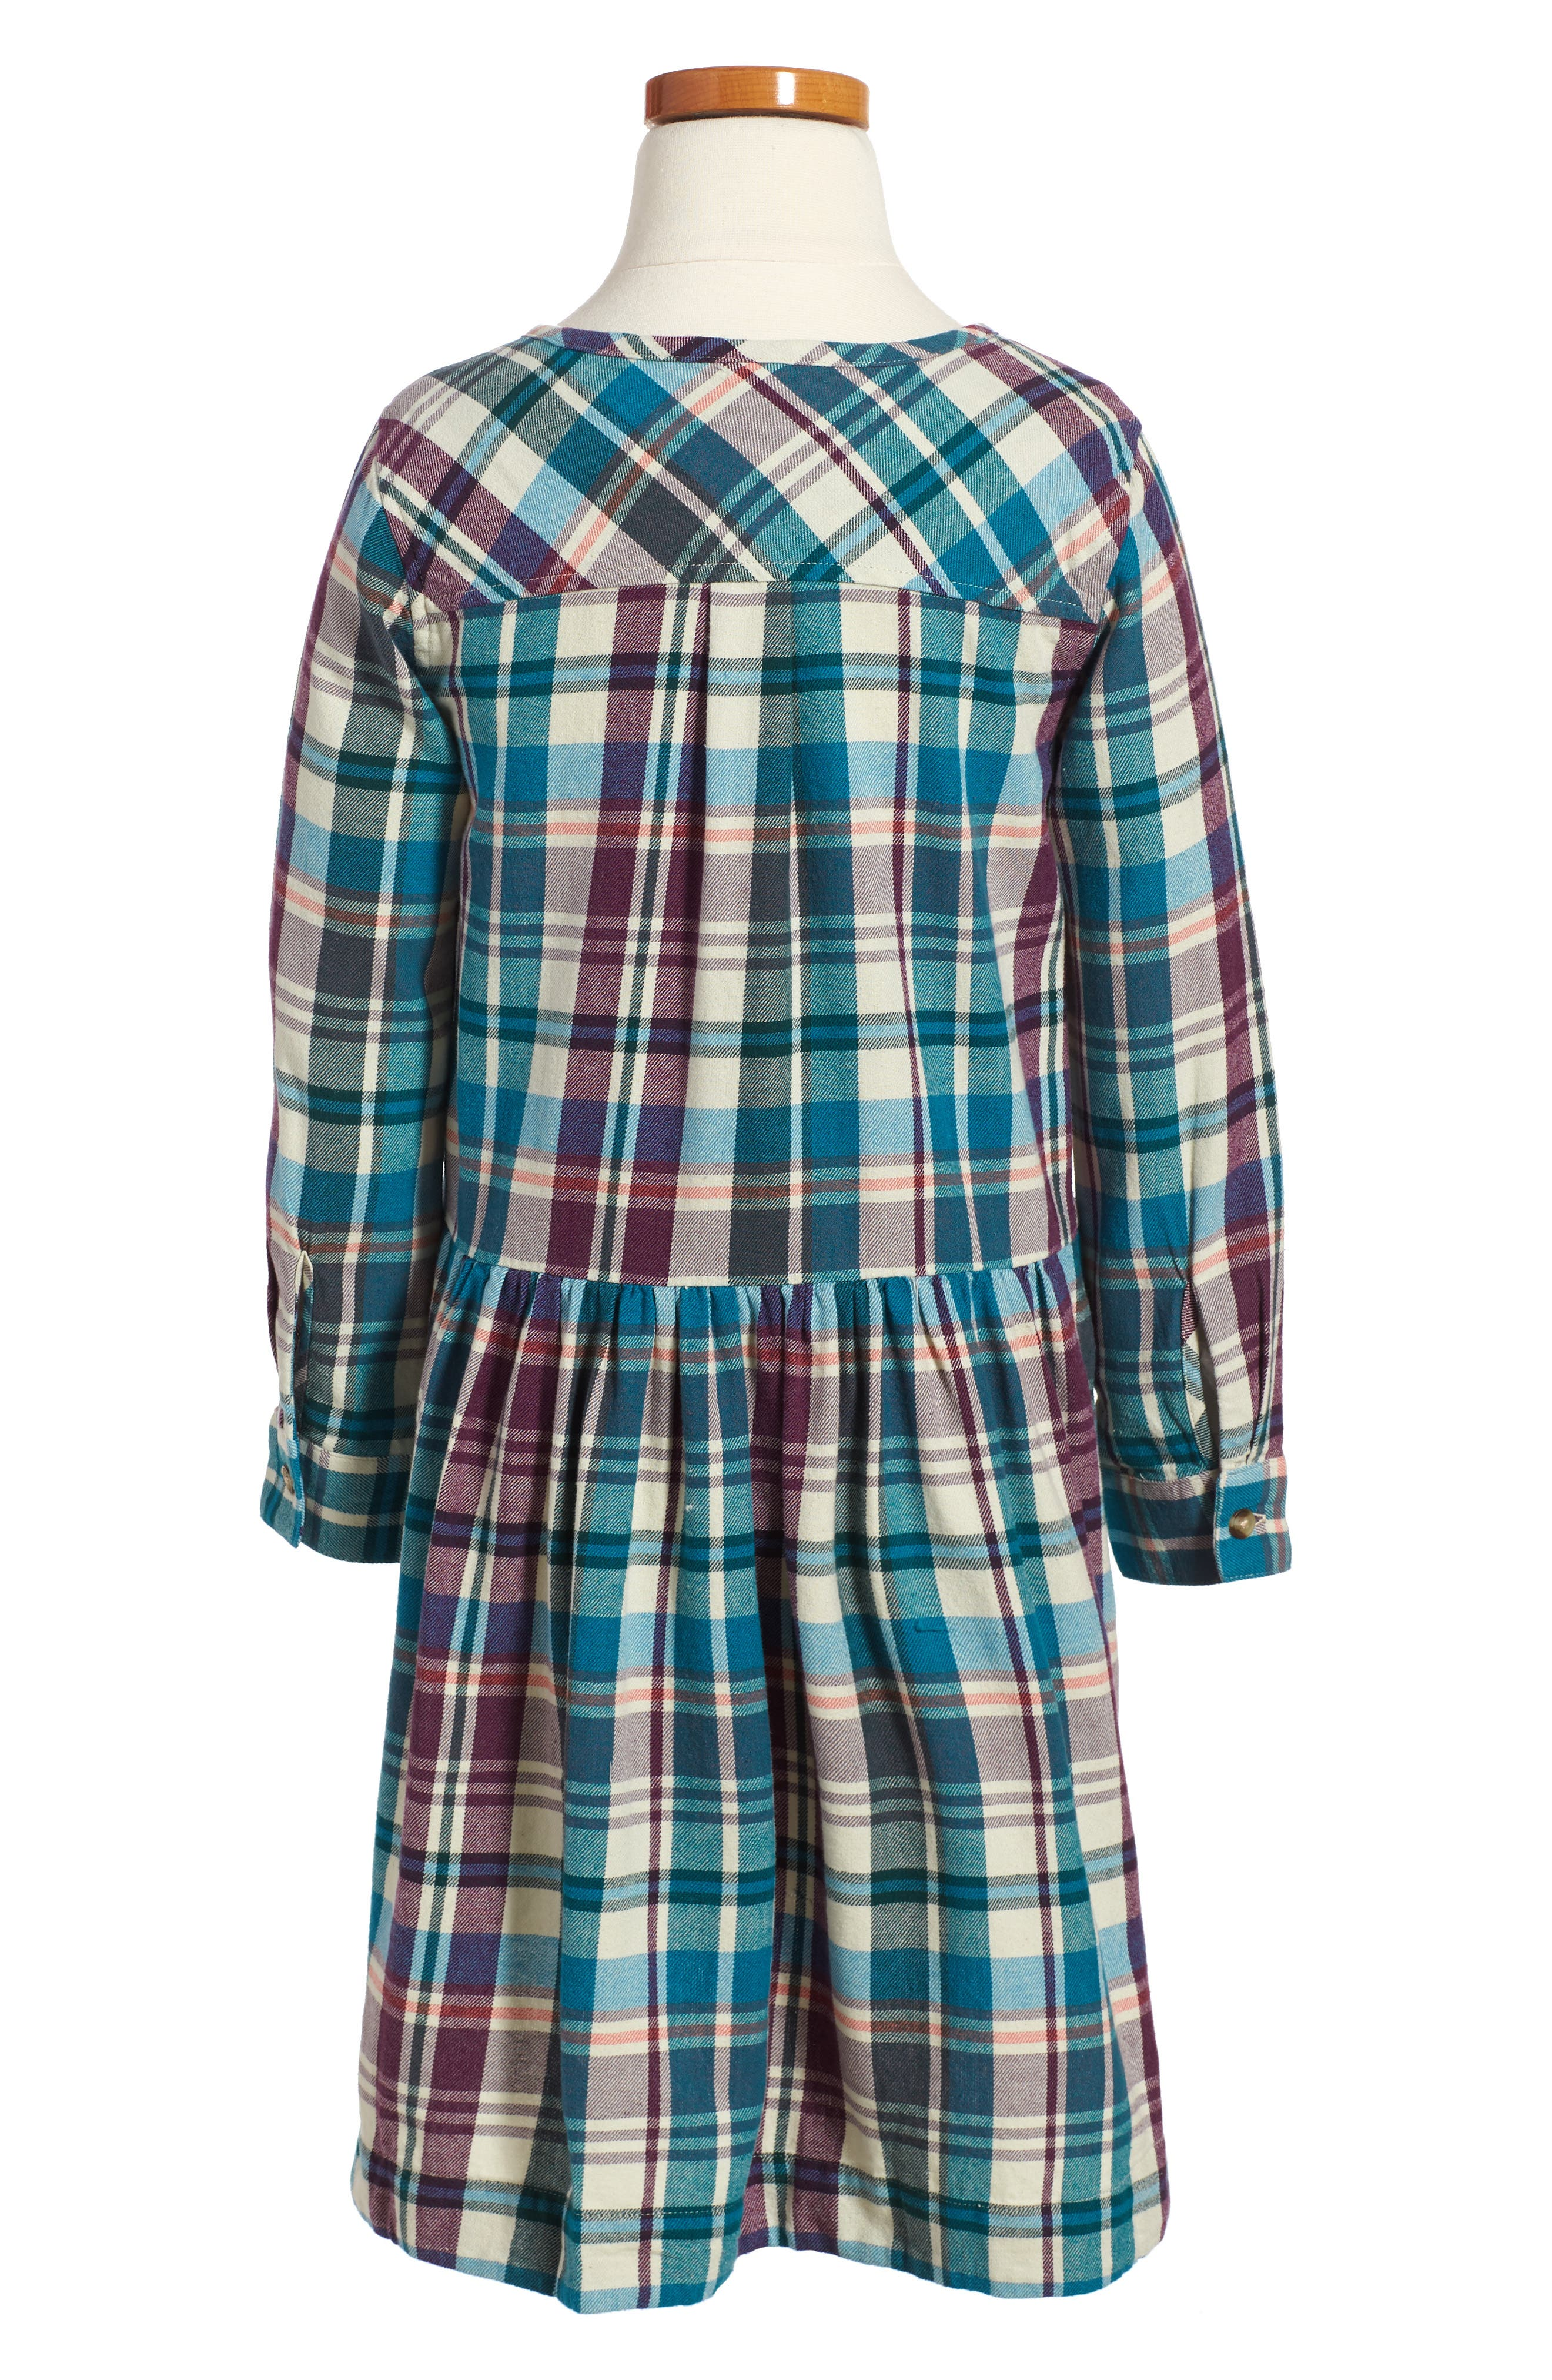 Applecross Plaid Flannel Shirtdress,                             Alternate thumbnail 2, color,                             900